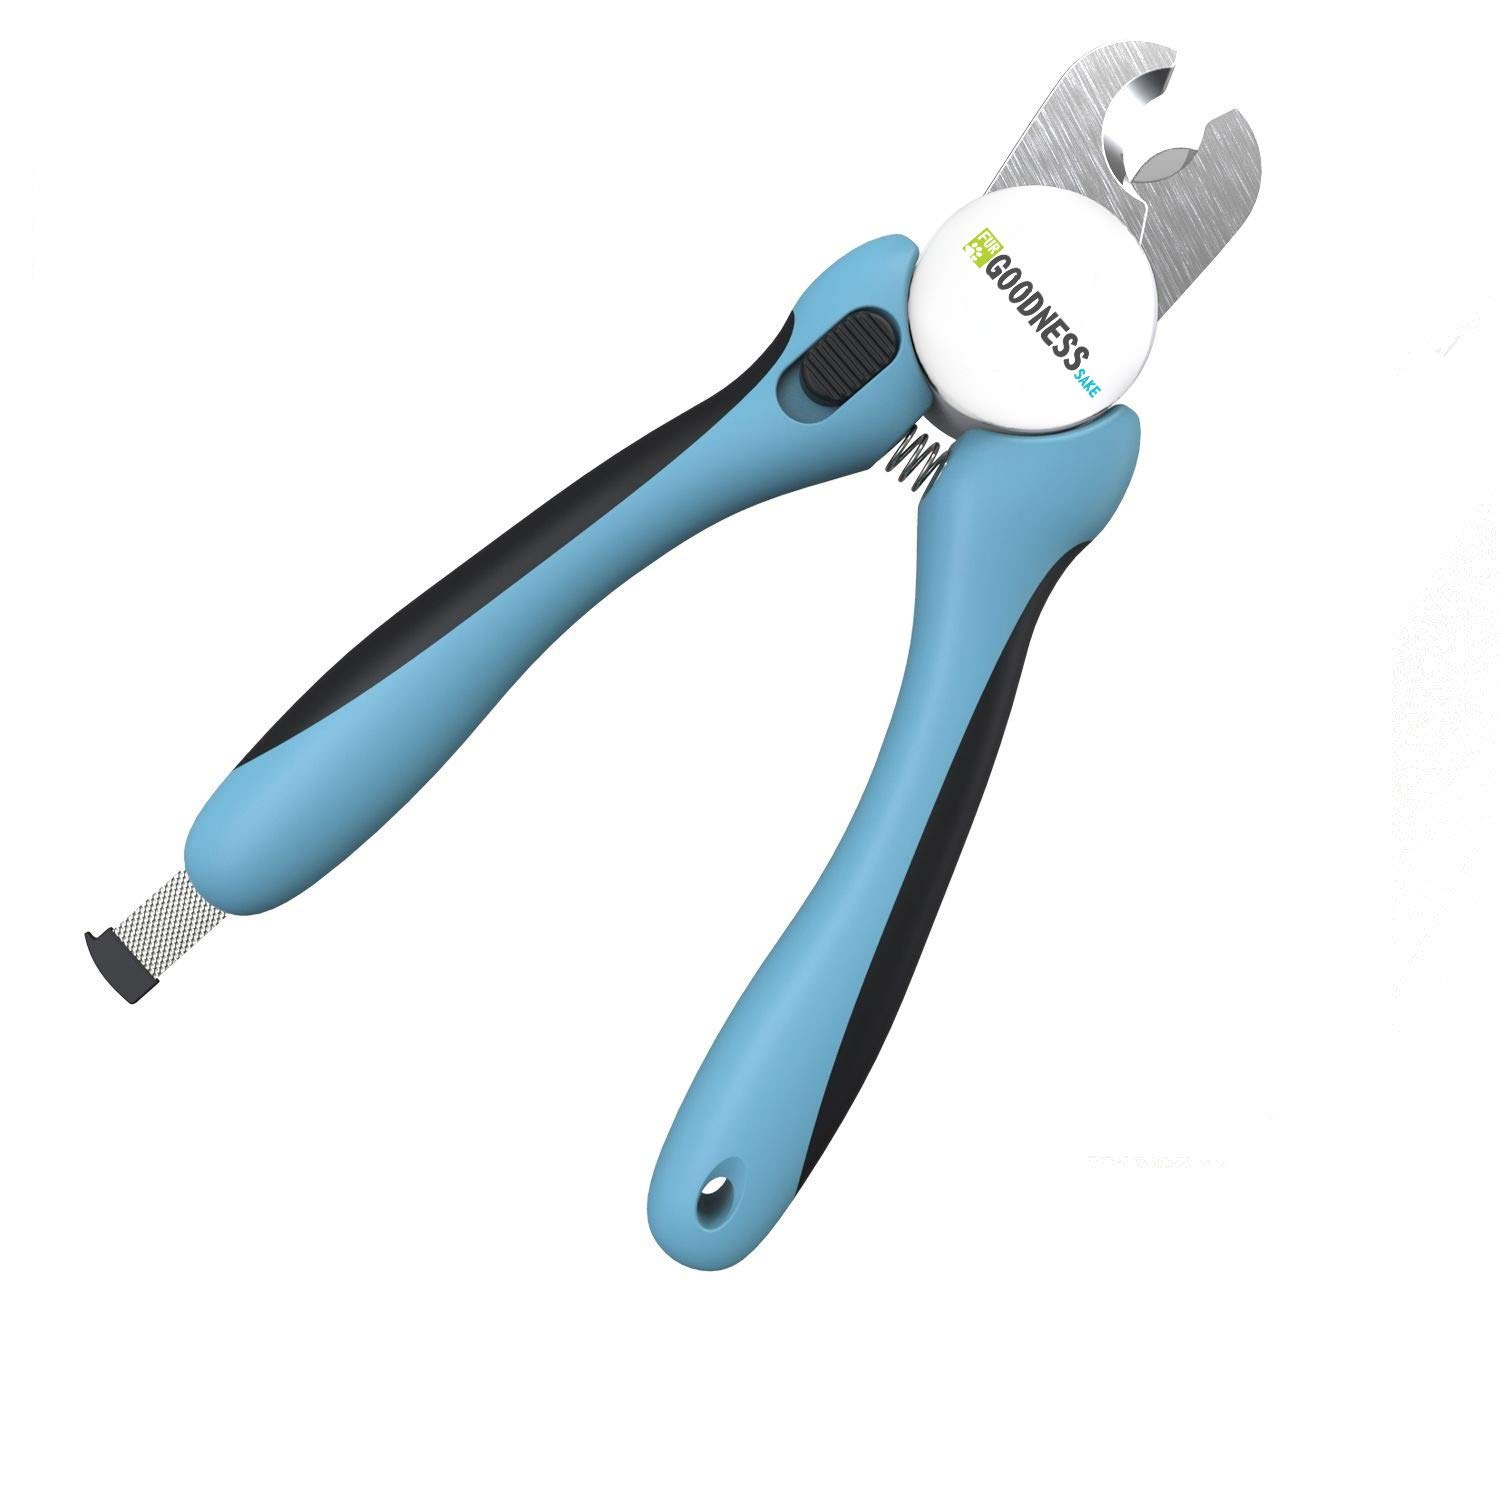 Dog Nail Clippers Large Breed - Easy to Use Dog Nail Trimmer and Toenail Clippers - Quick Sensor, Sharp Cuts and Safety Guard to Clip with Confidence by Fur Goodness Sake